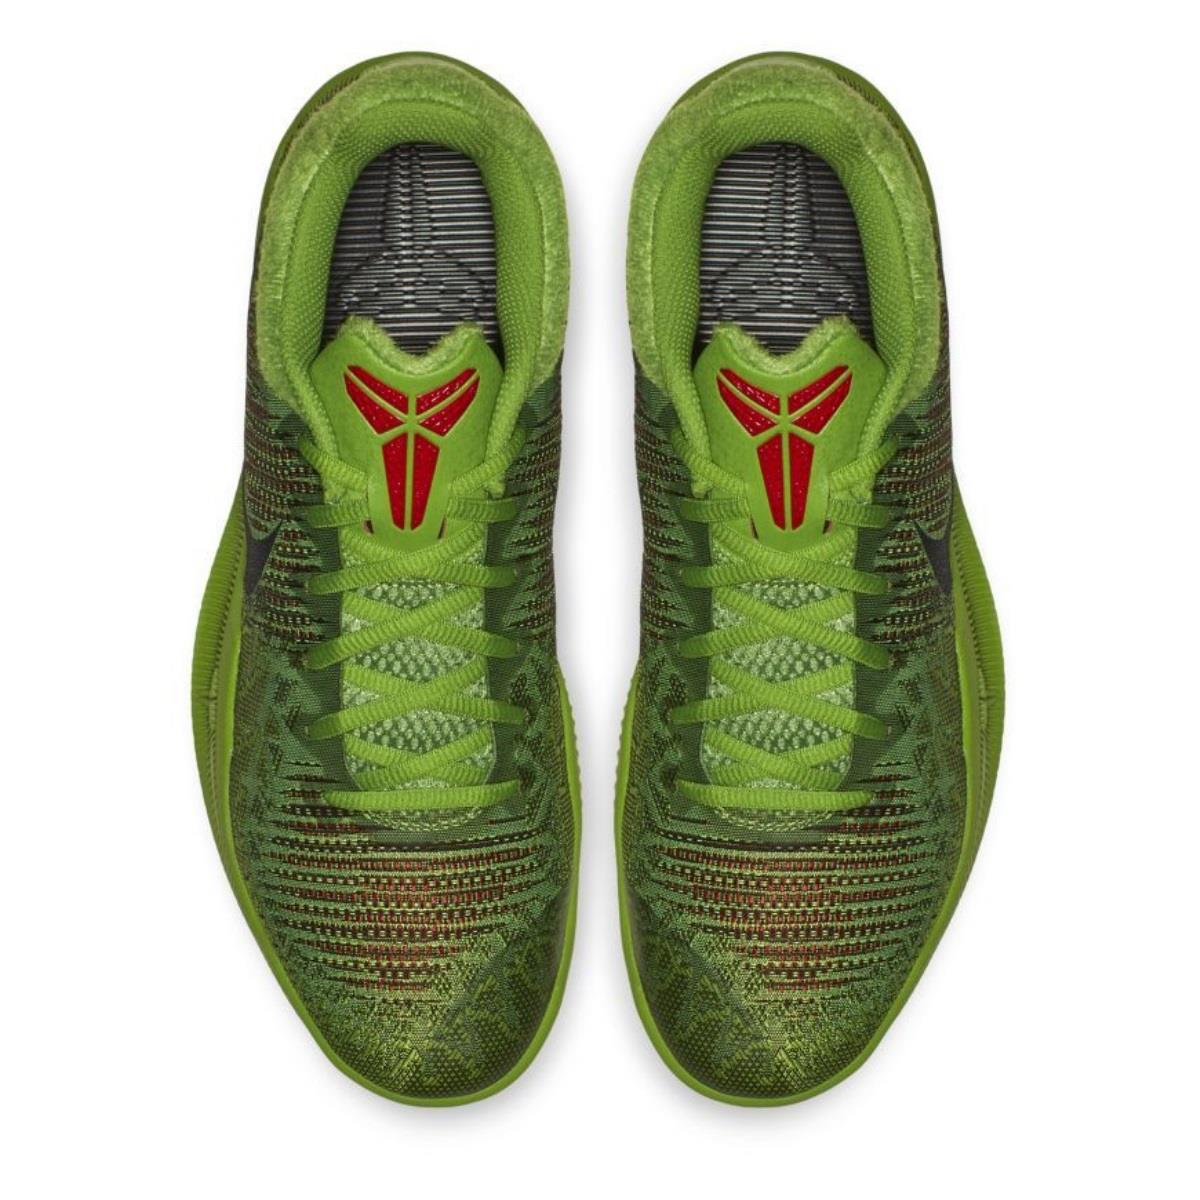 NIKE 908972-300 MAMBA RAGE THE GRINCH 104f8b2af